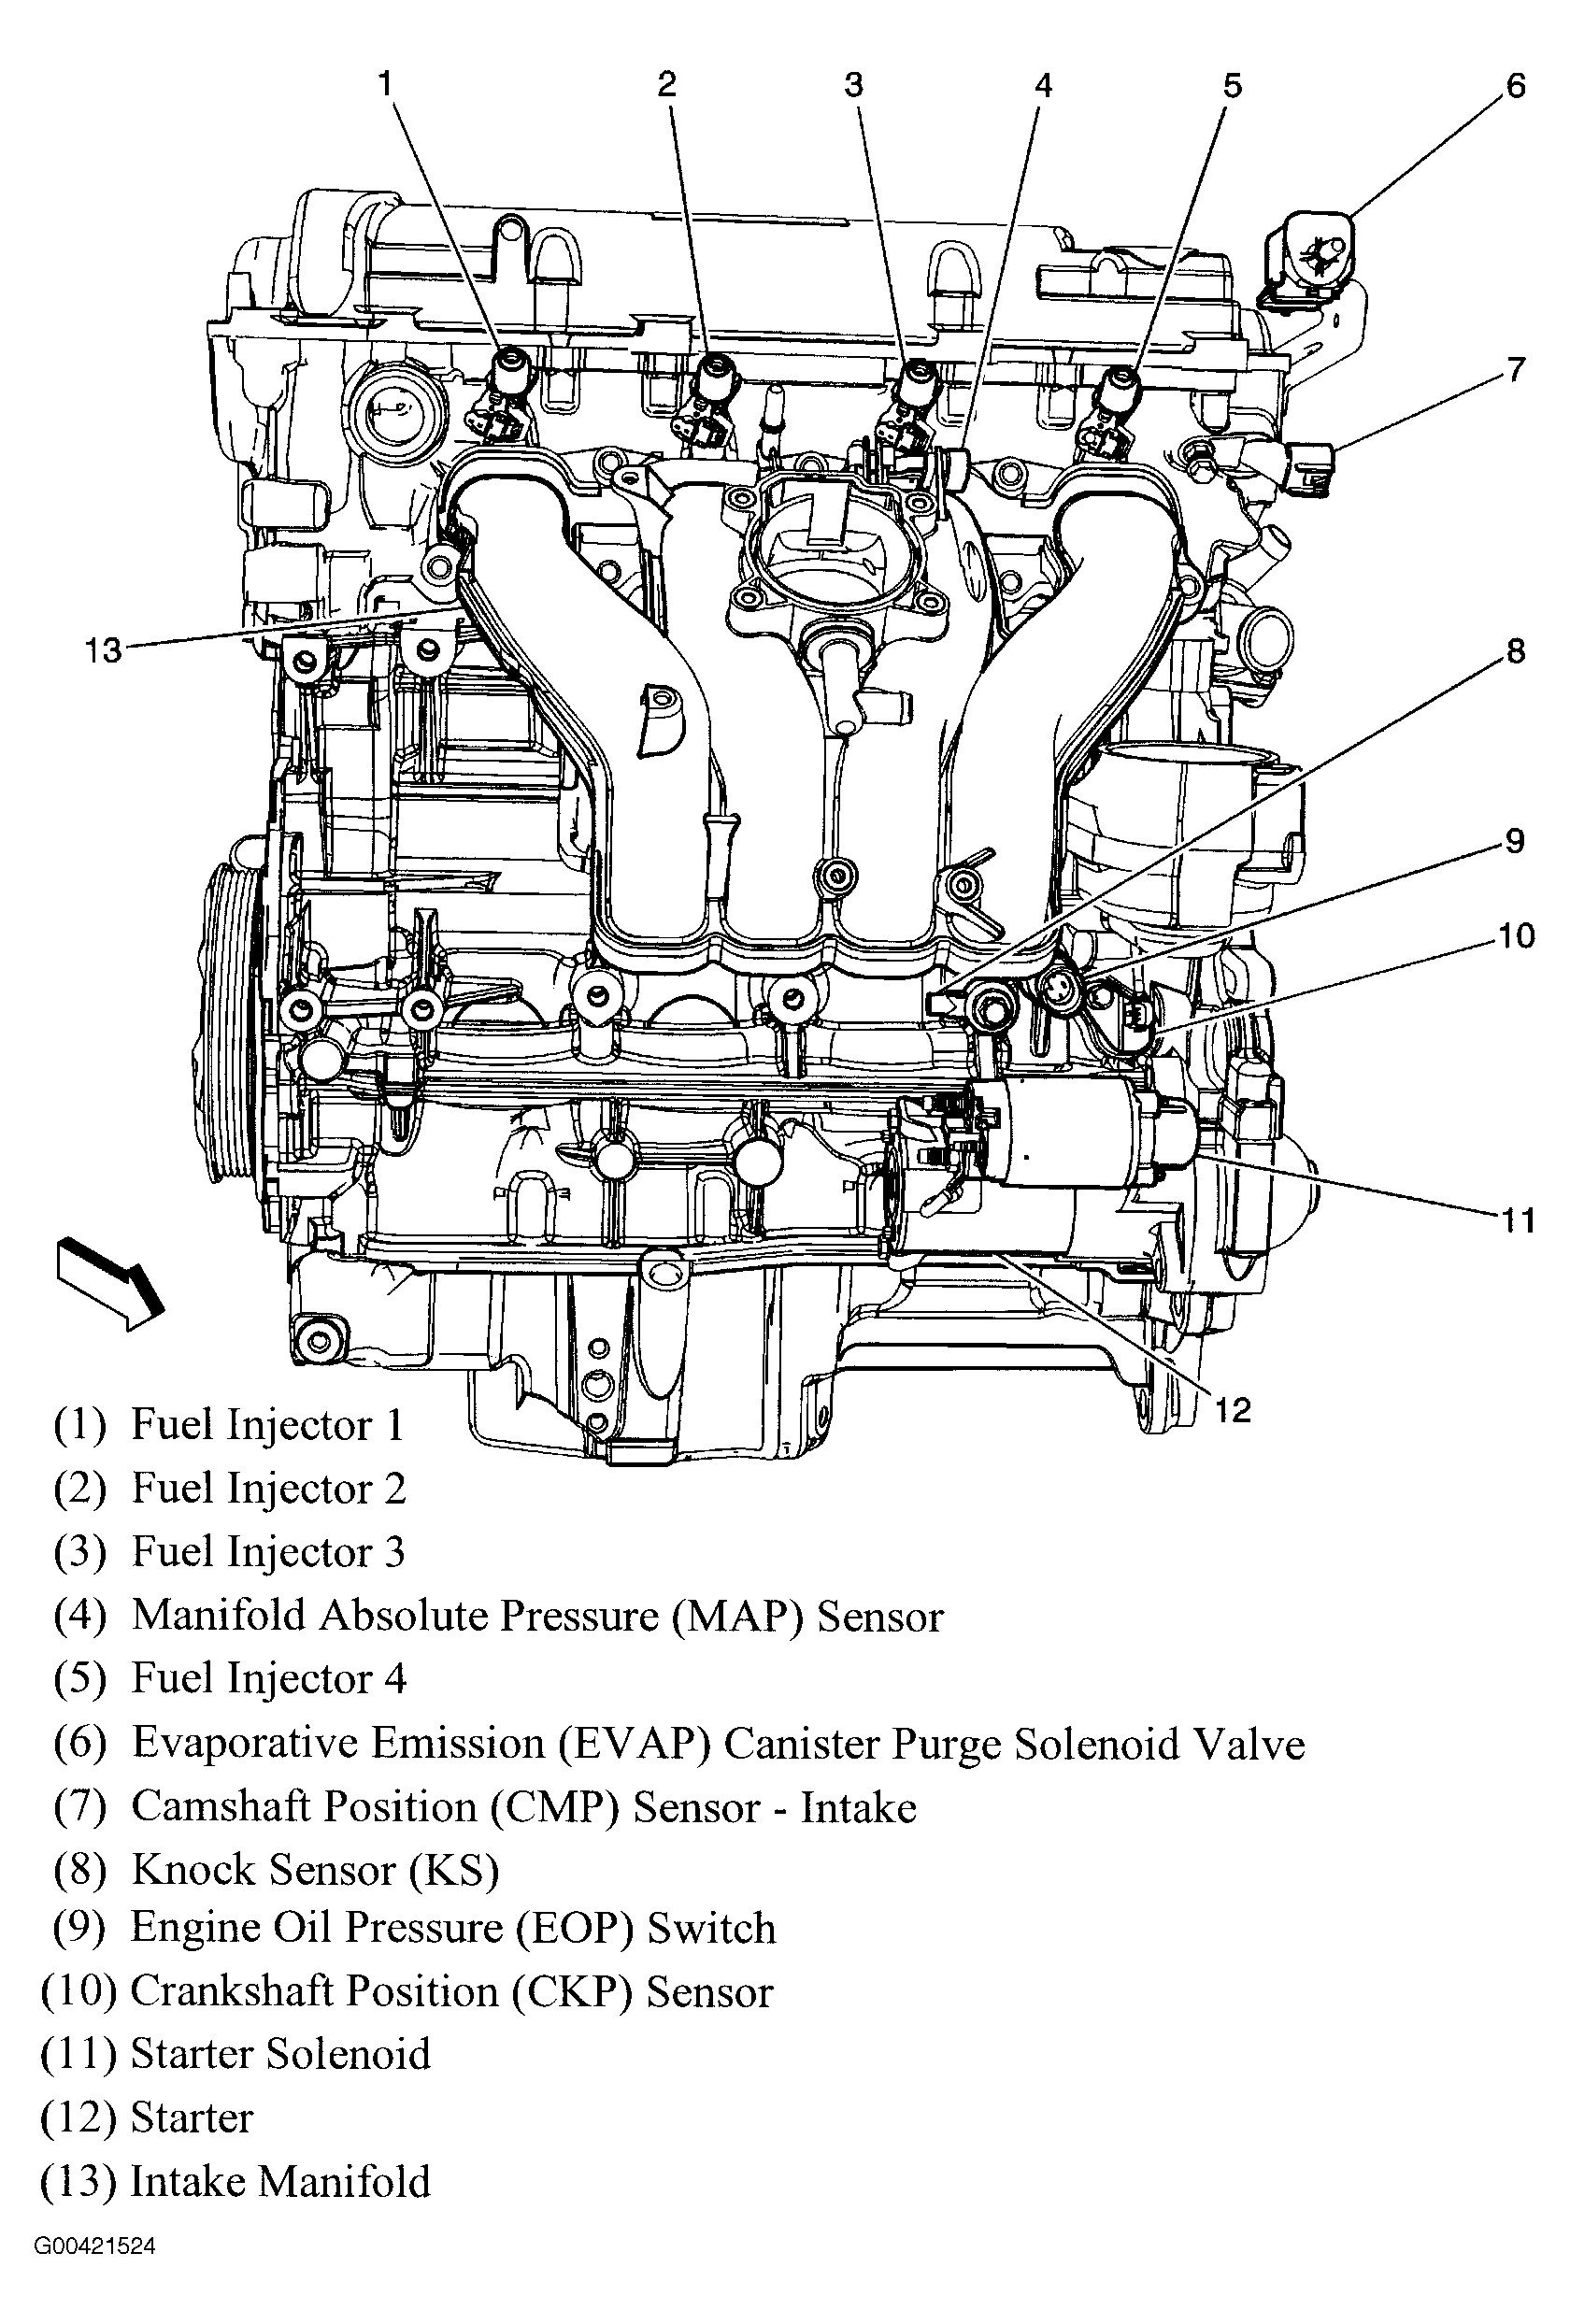 Chevy Uplander Engine Diagram Wiring Library. 2011 Chevy Impala Fuse Diagram Auto Electrical Wiring Rh Psu Edu Co Fr Hardtobelieve Me 2005 Uplander Engine. Chevrolet. 2005 Chevrolet Uplander Engine Diagram At Scoala.co